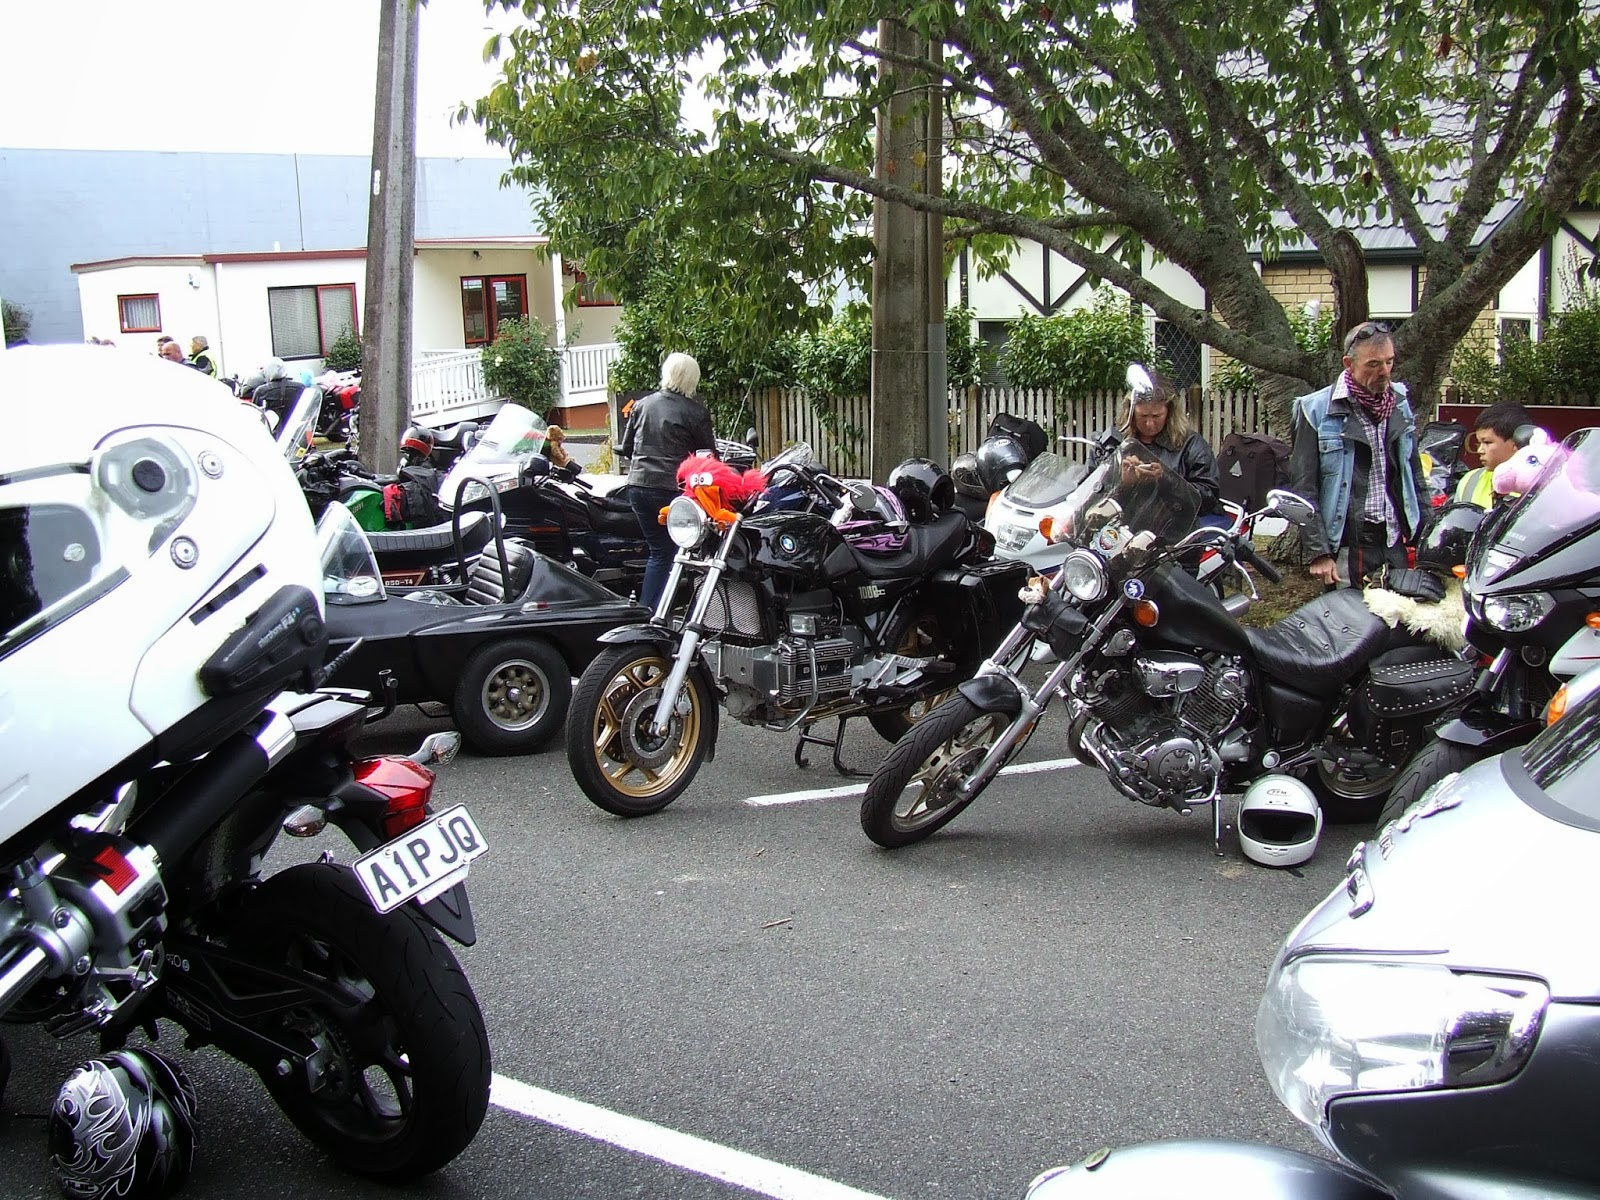 Toy Run Ulysses Waikato Chapter Cambridge - Hamilton NZ DSCF2886